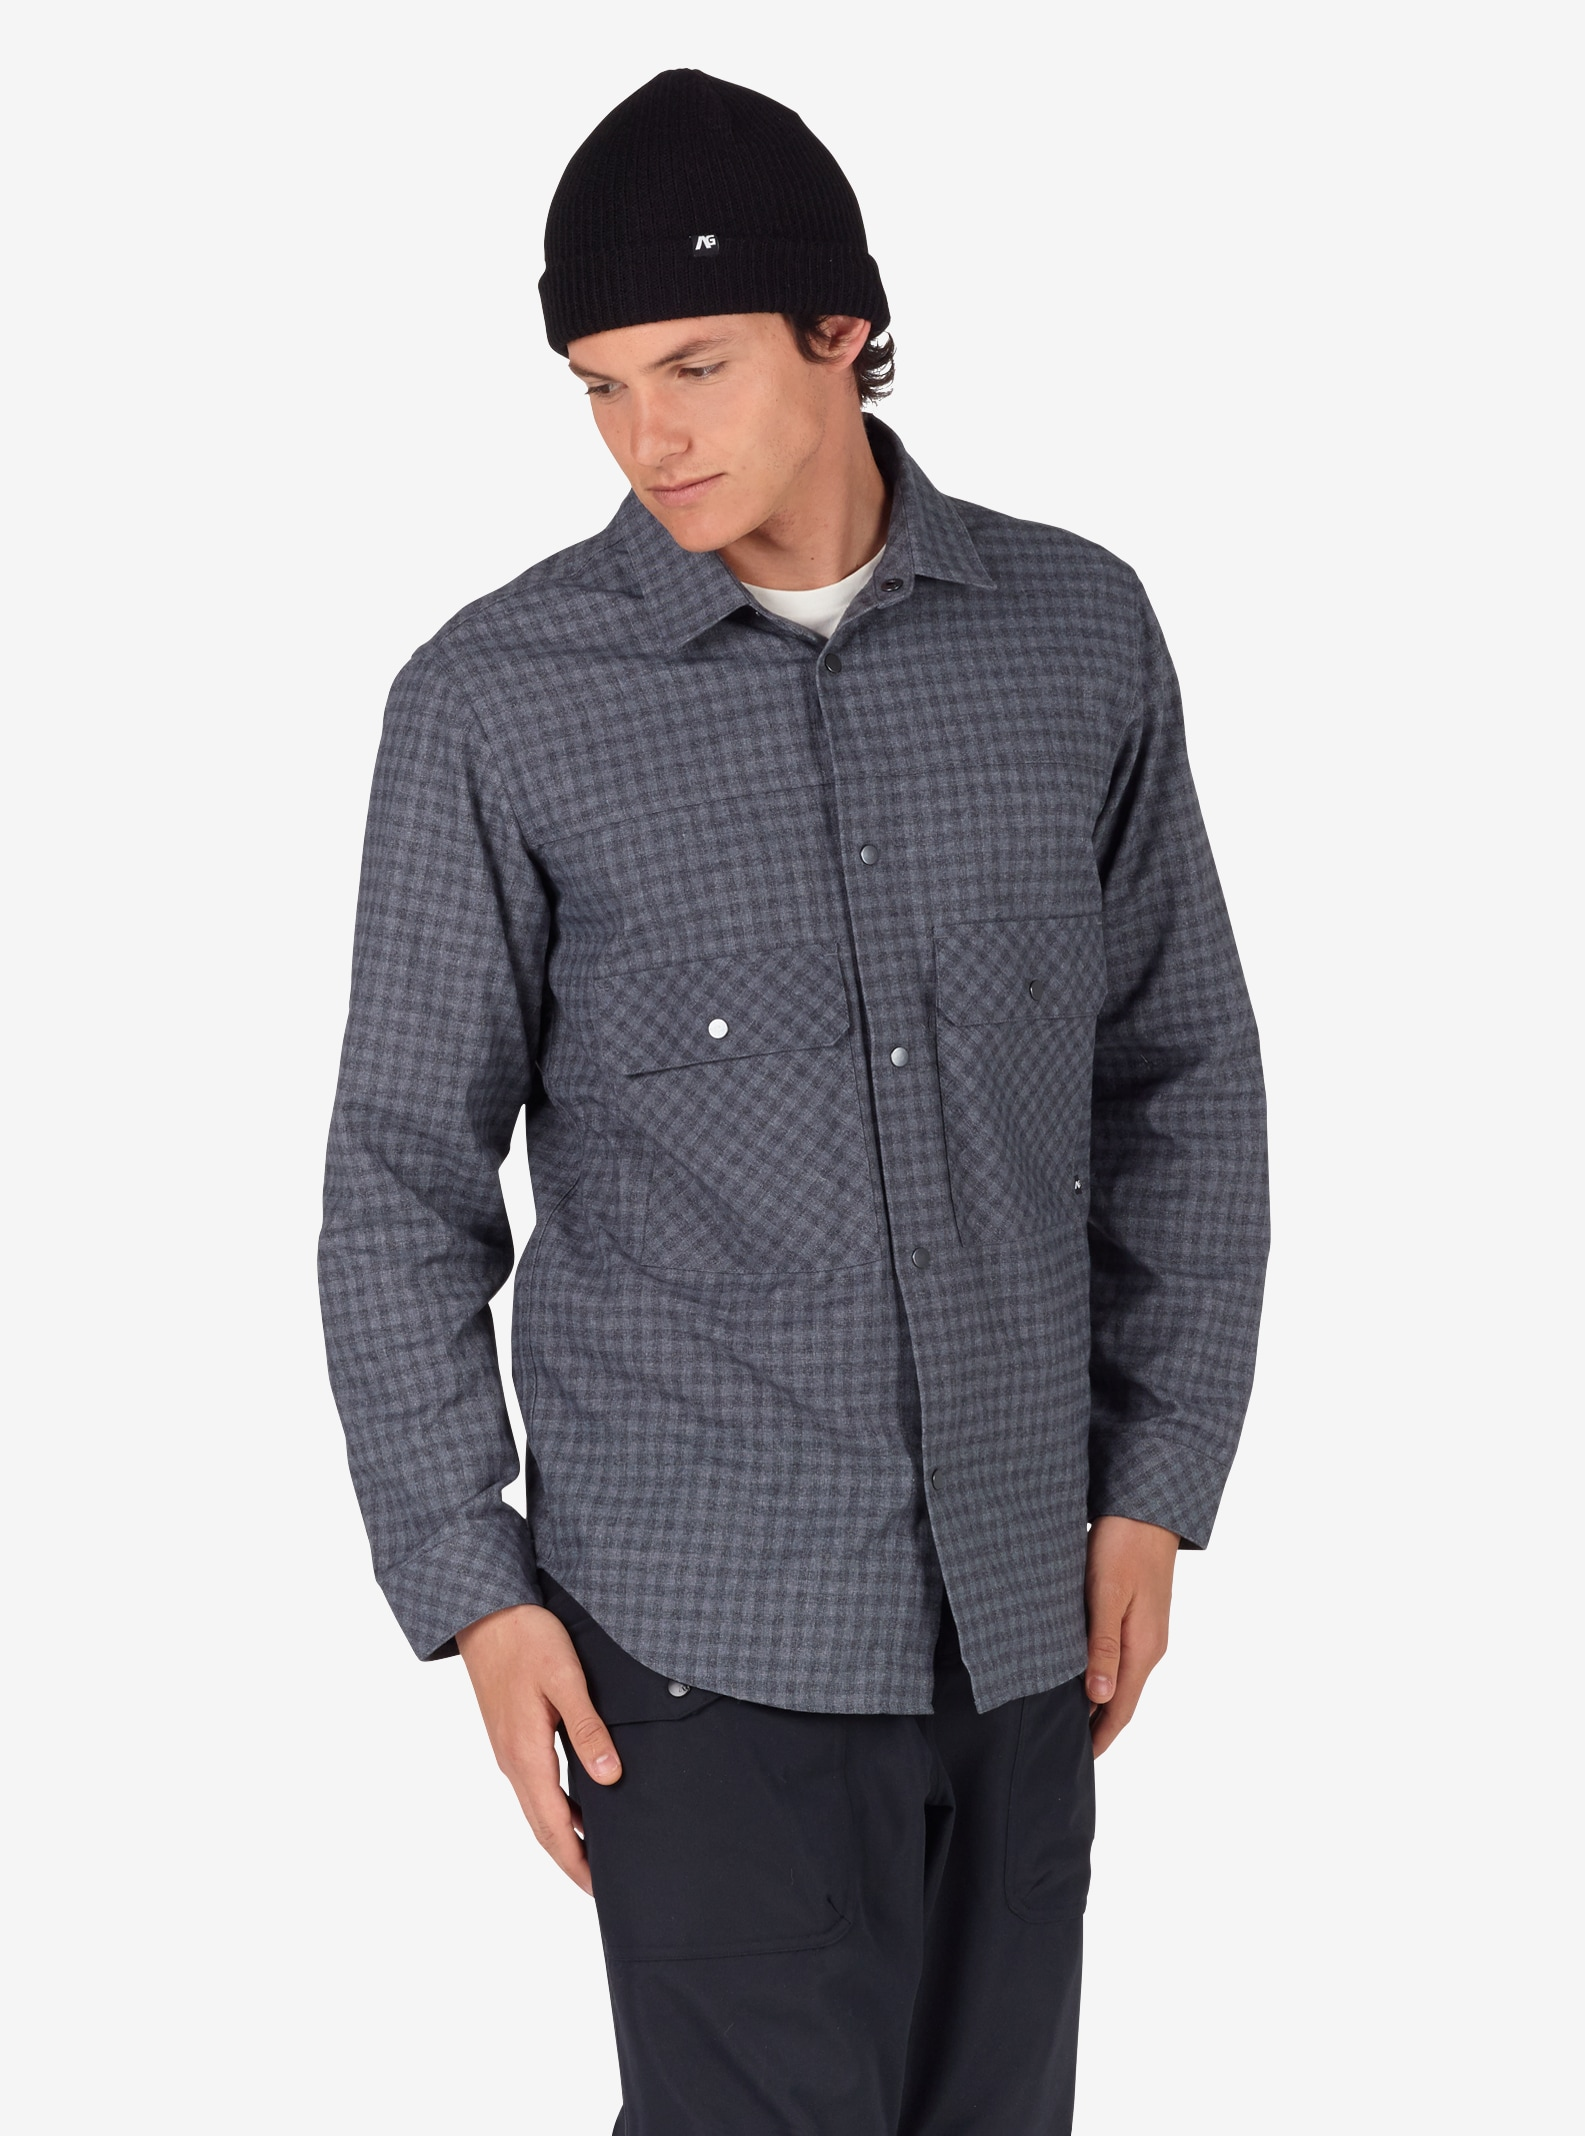 Men's Analog ATF Operative Flannel shown in Heathers Check